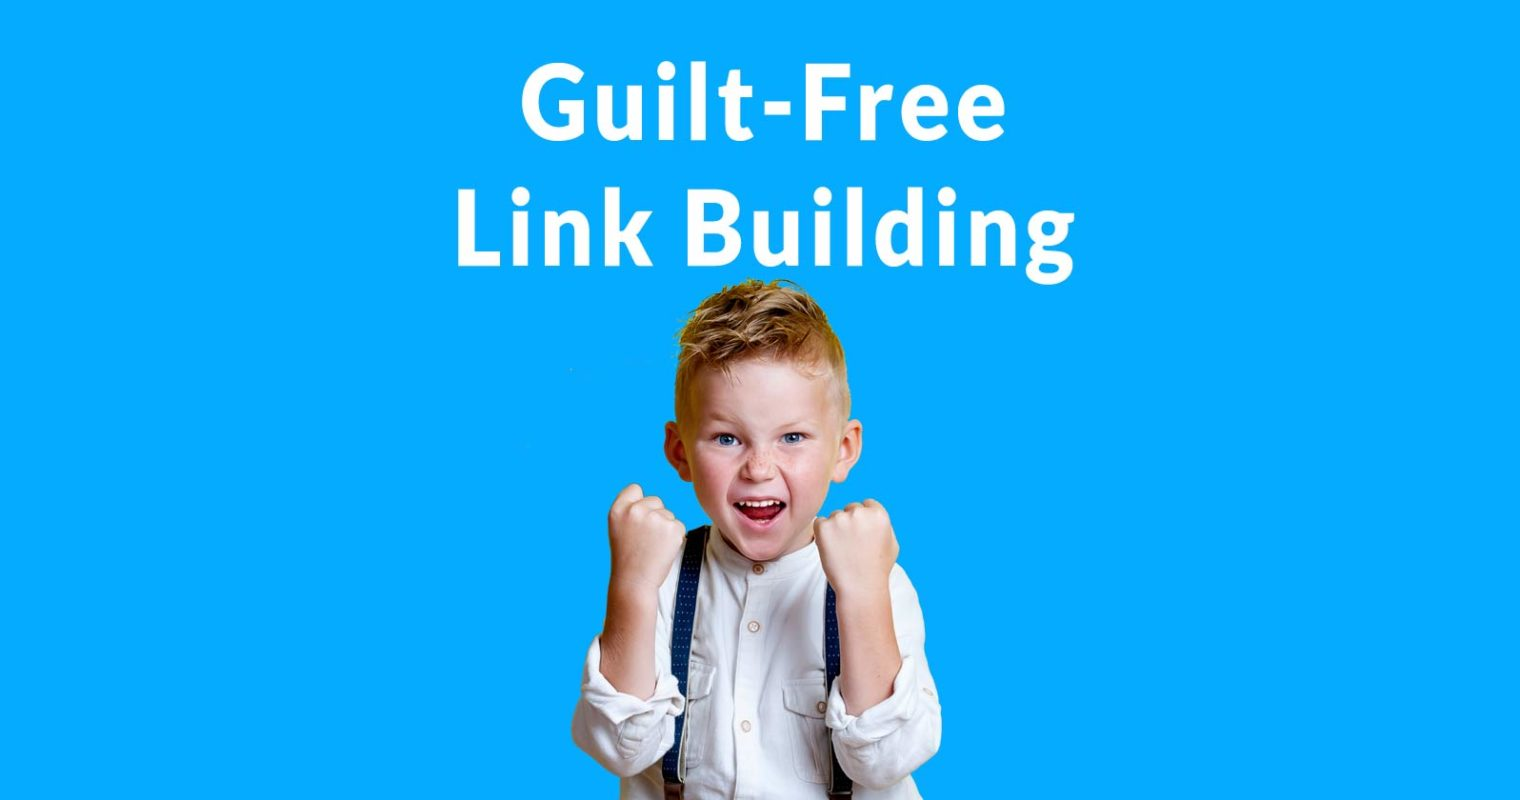 5 Non-Spammy Link Building Tips that Work